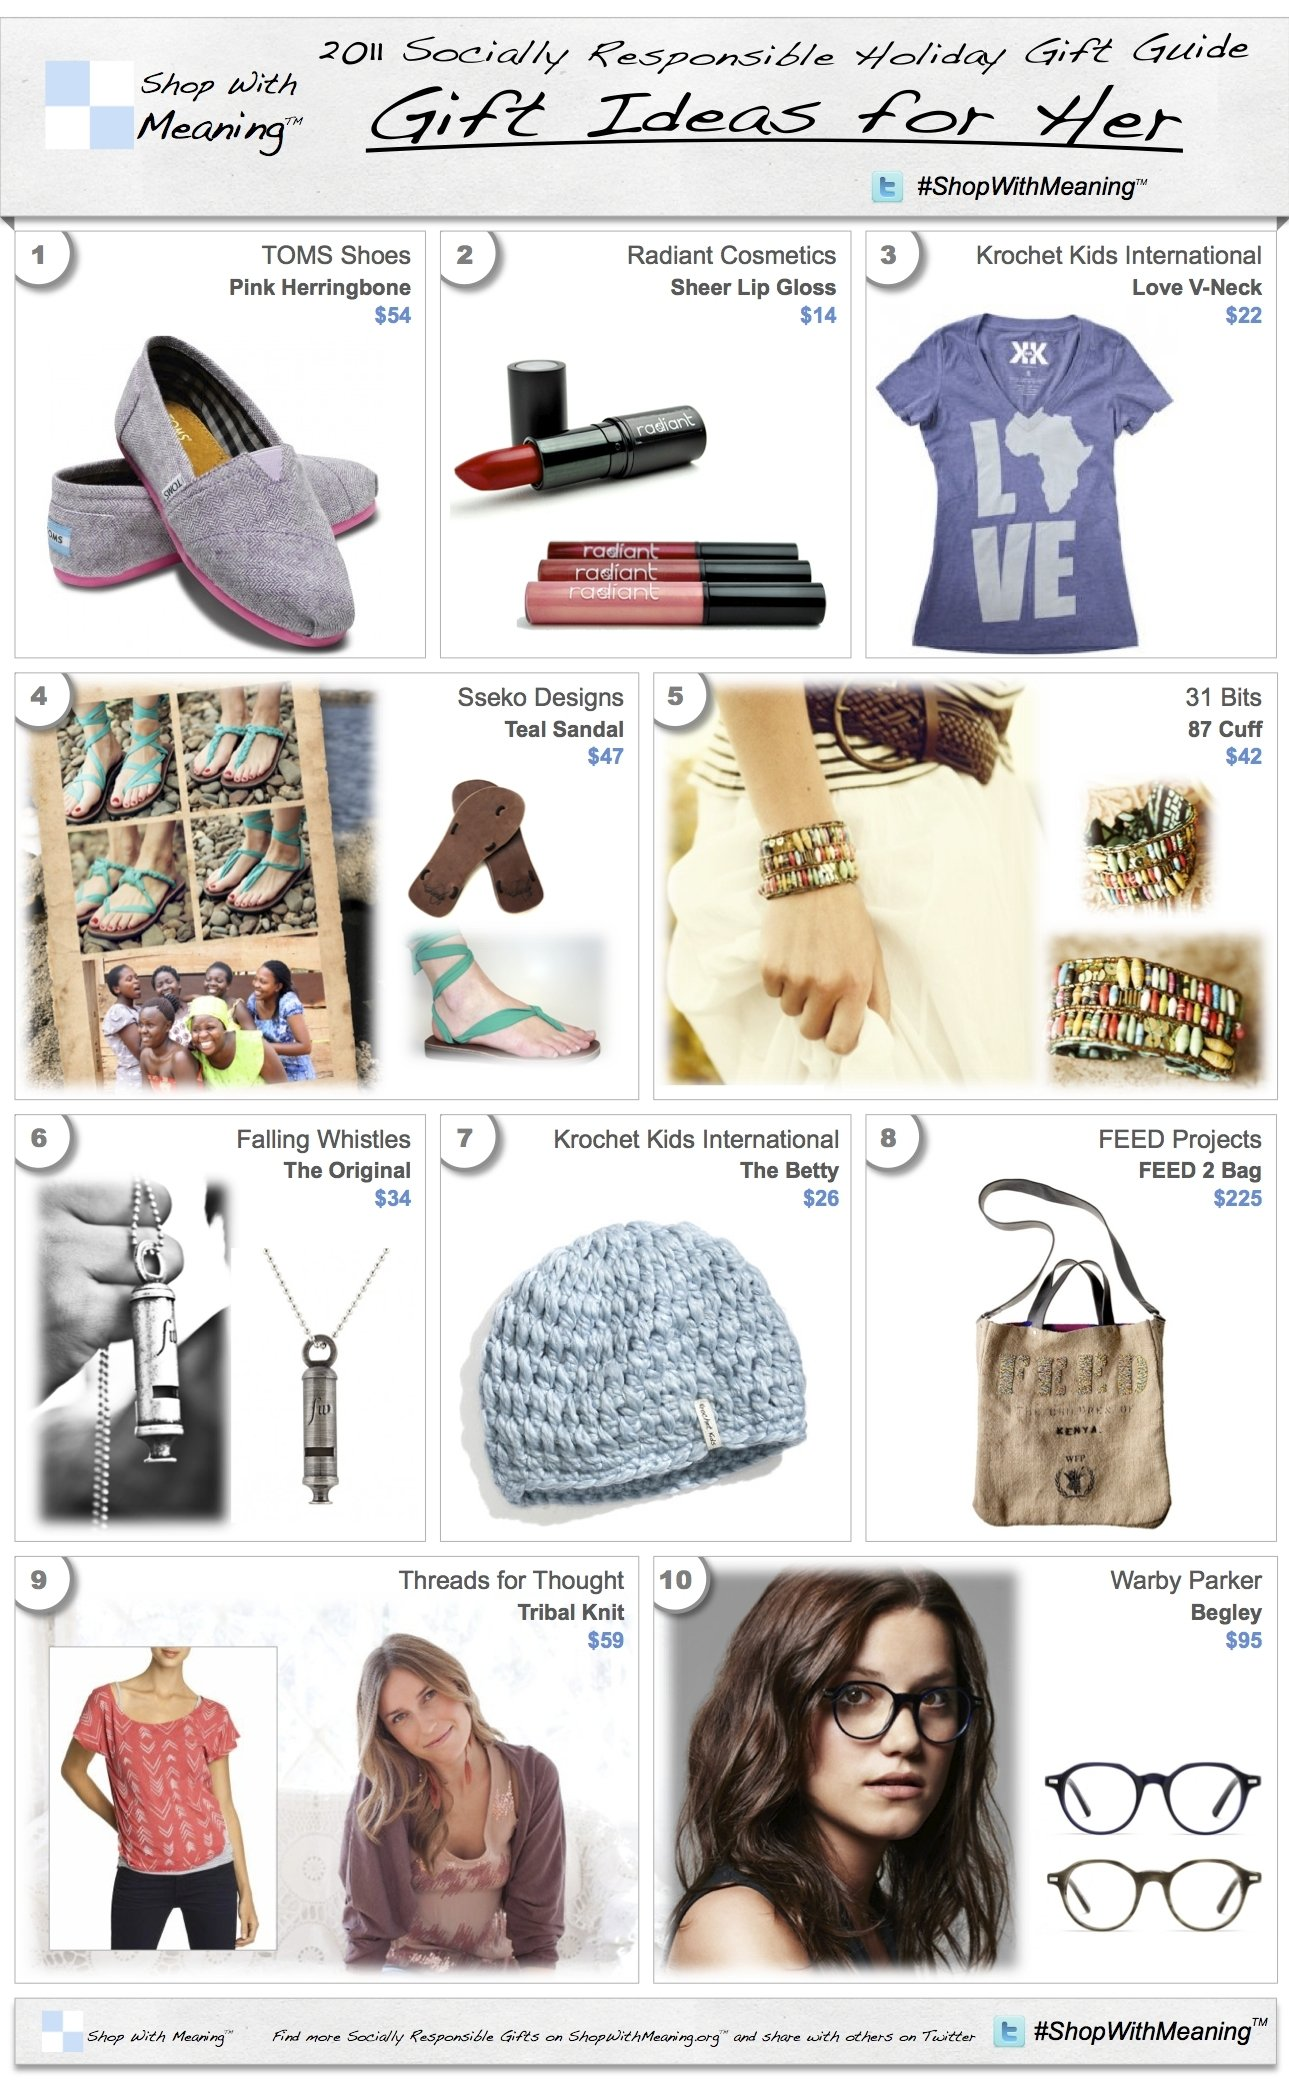 10 Fantastic Gift Ideas For My Wife For Christmas 2011 christmas gift ideas women socially responsible christmas 2